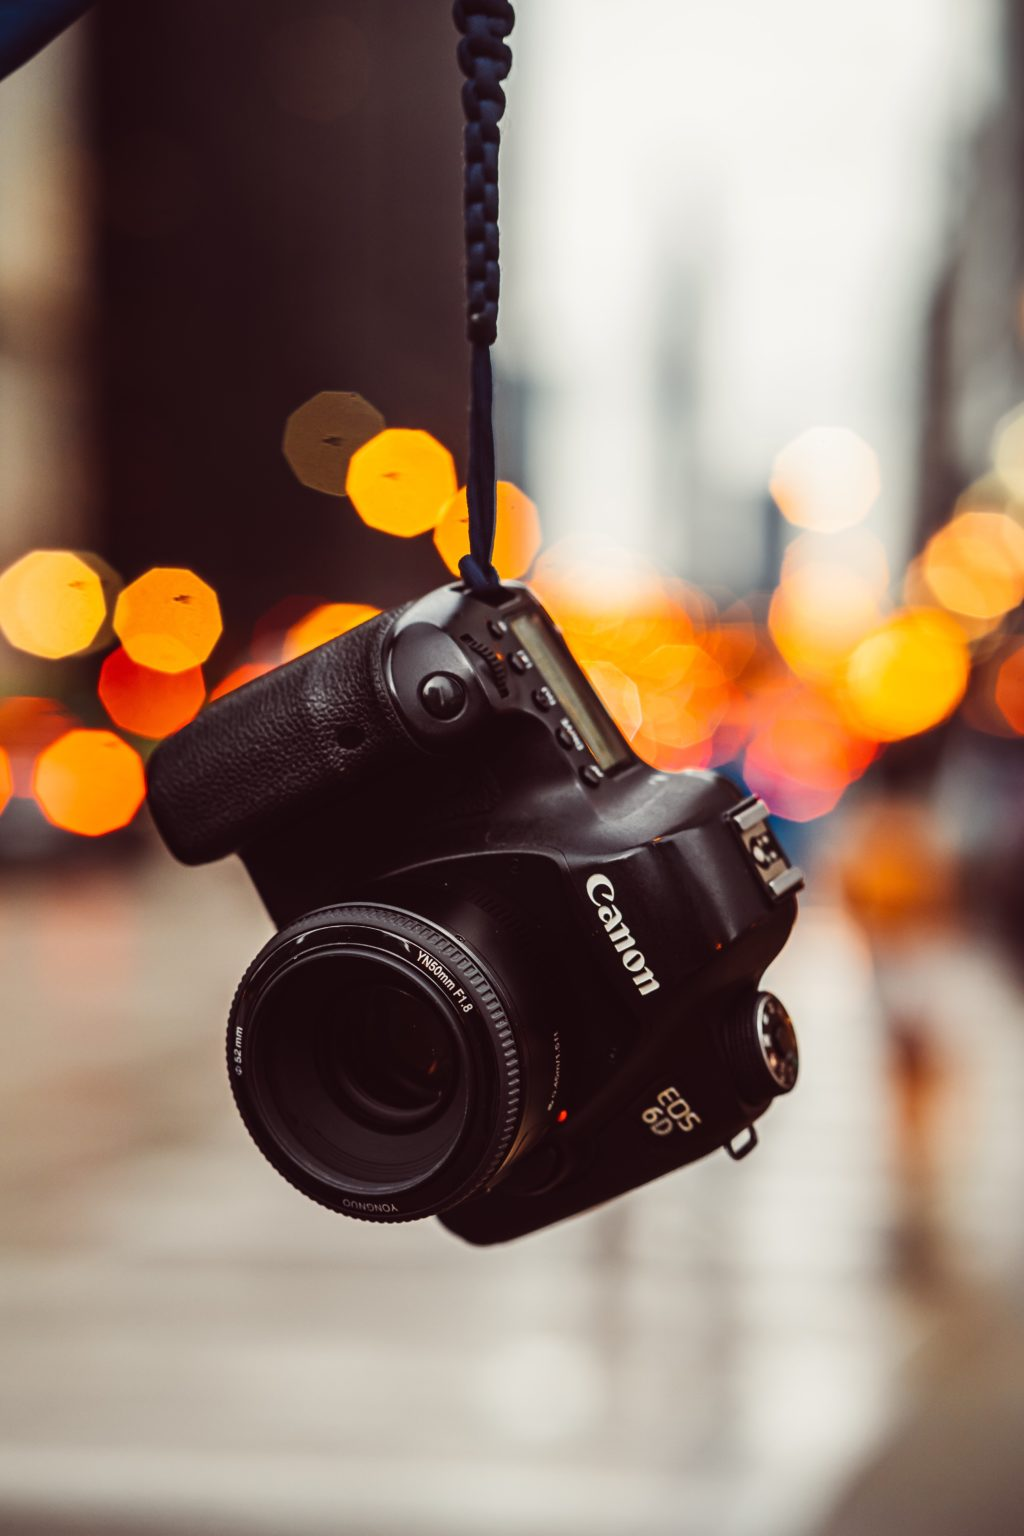 5 Compact Cameras That You Will Enjoy Carrying Everywhere You Go | Light Stalking